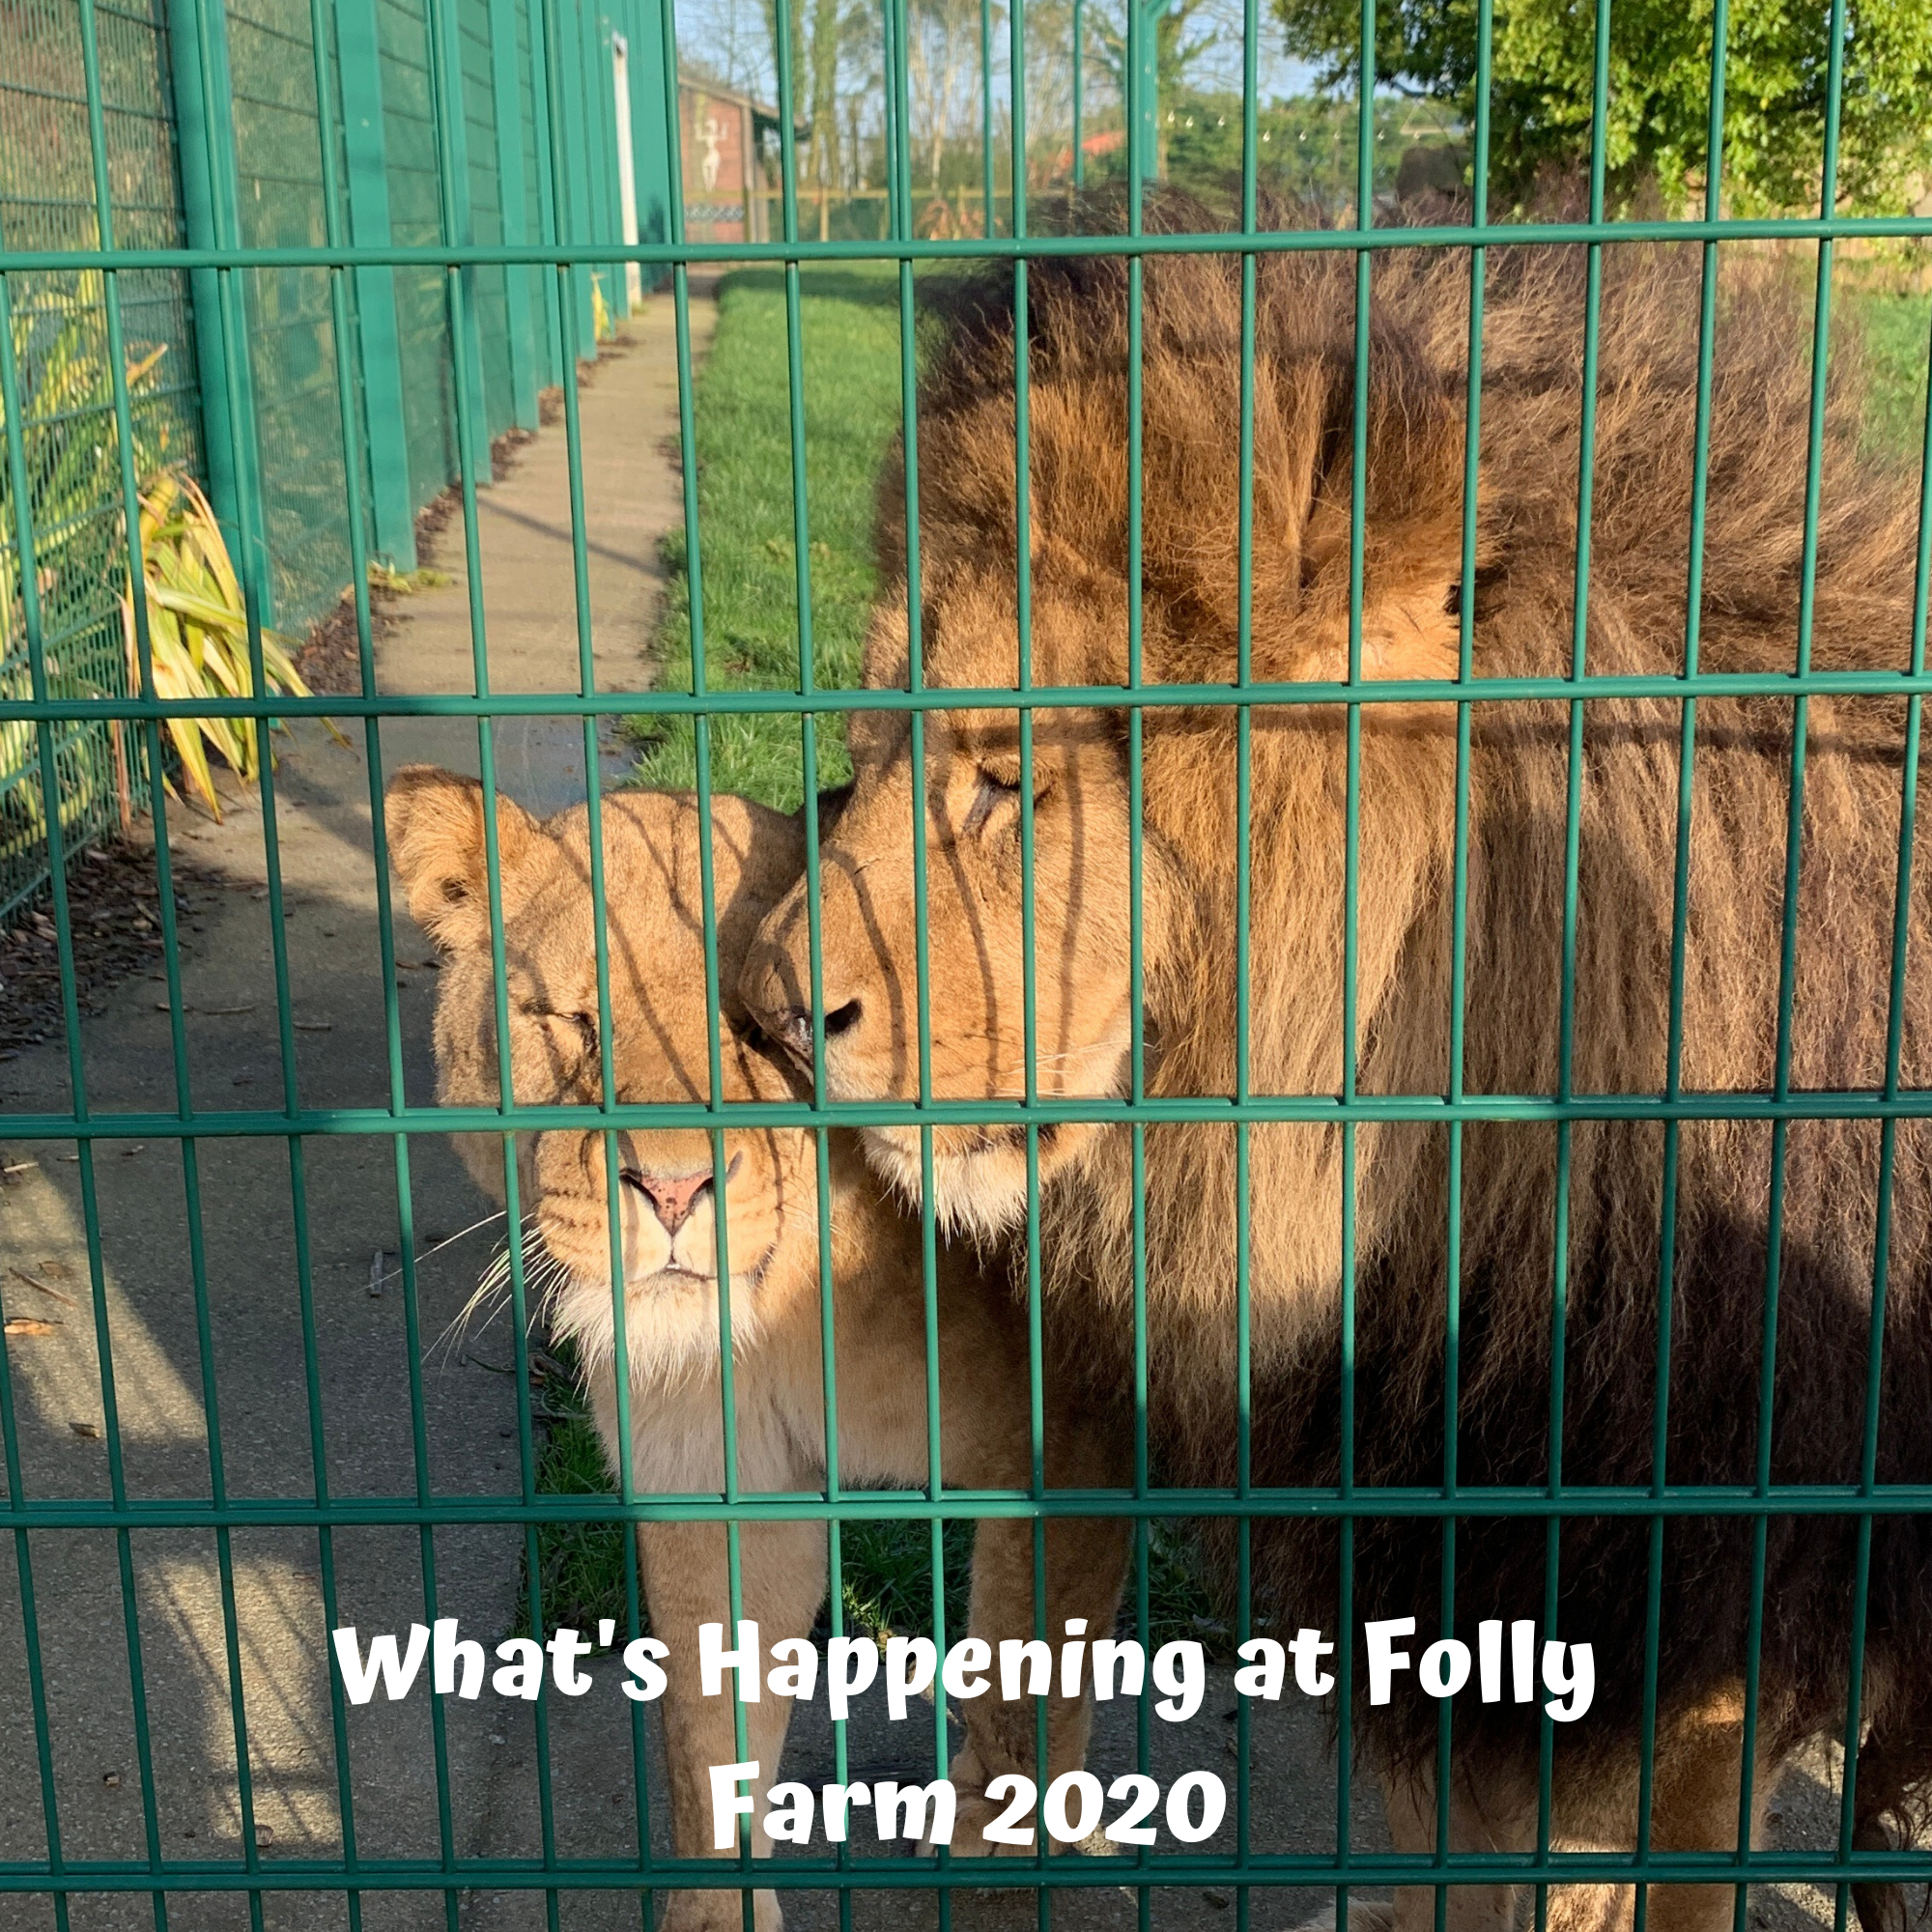 What's Happening at Folly Farm 2020